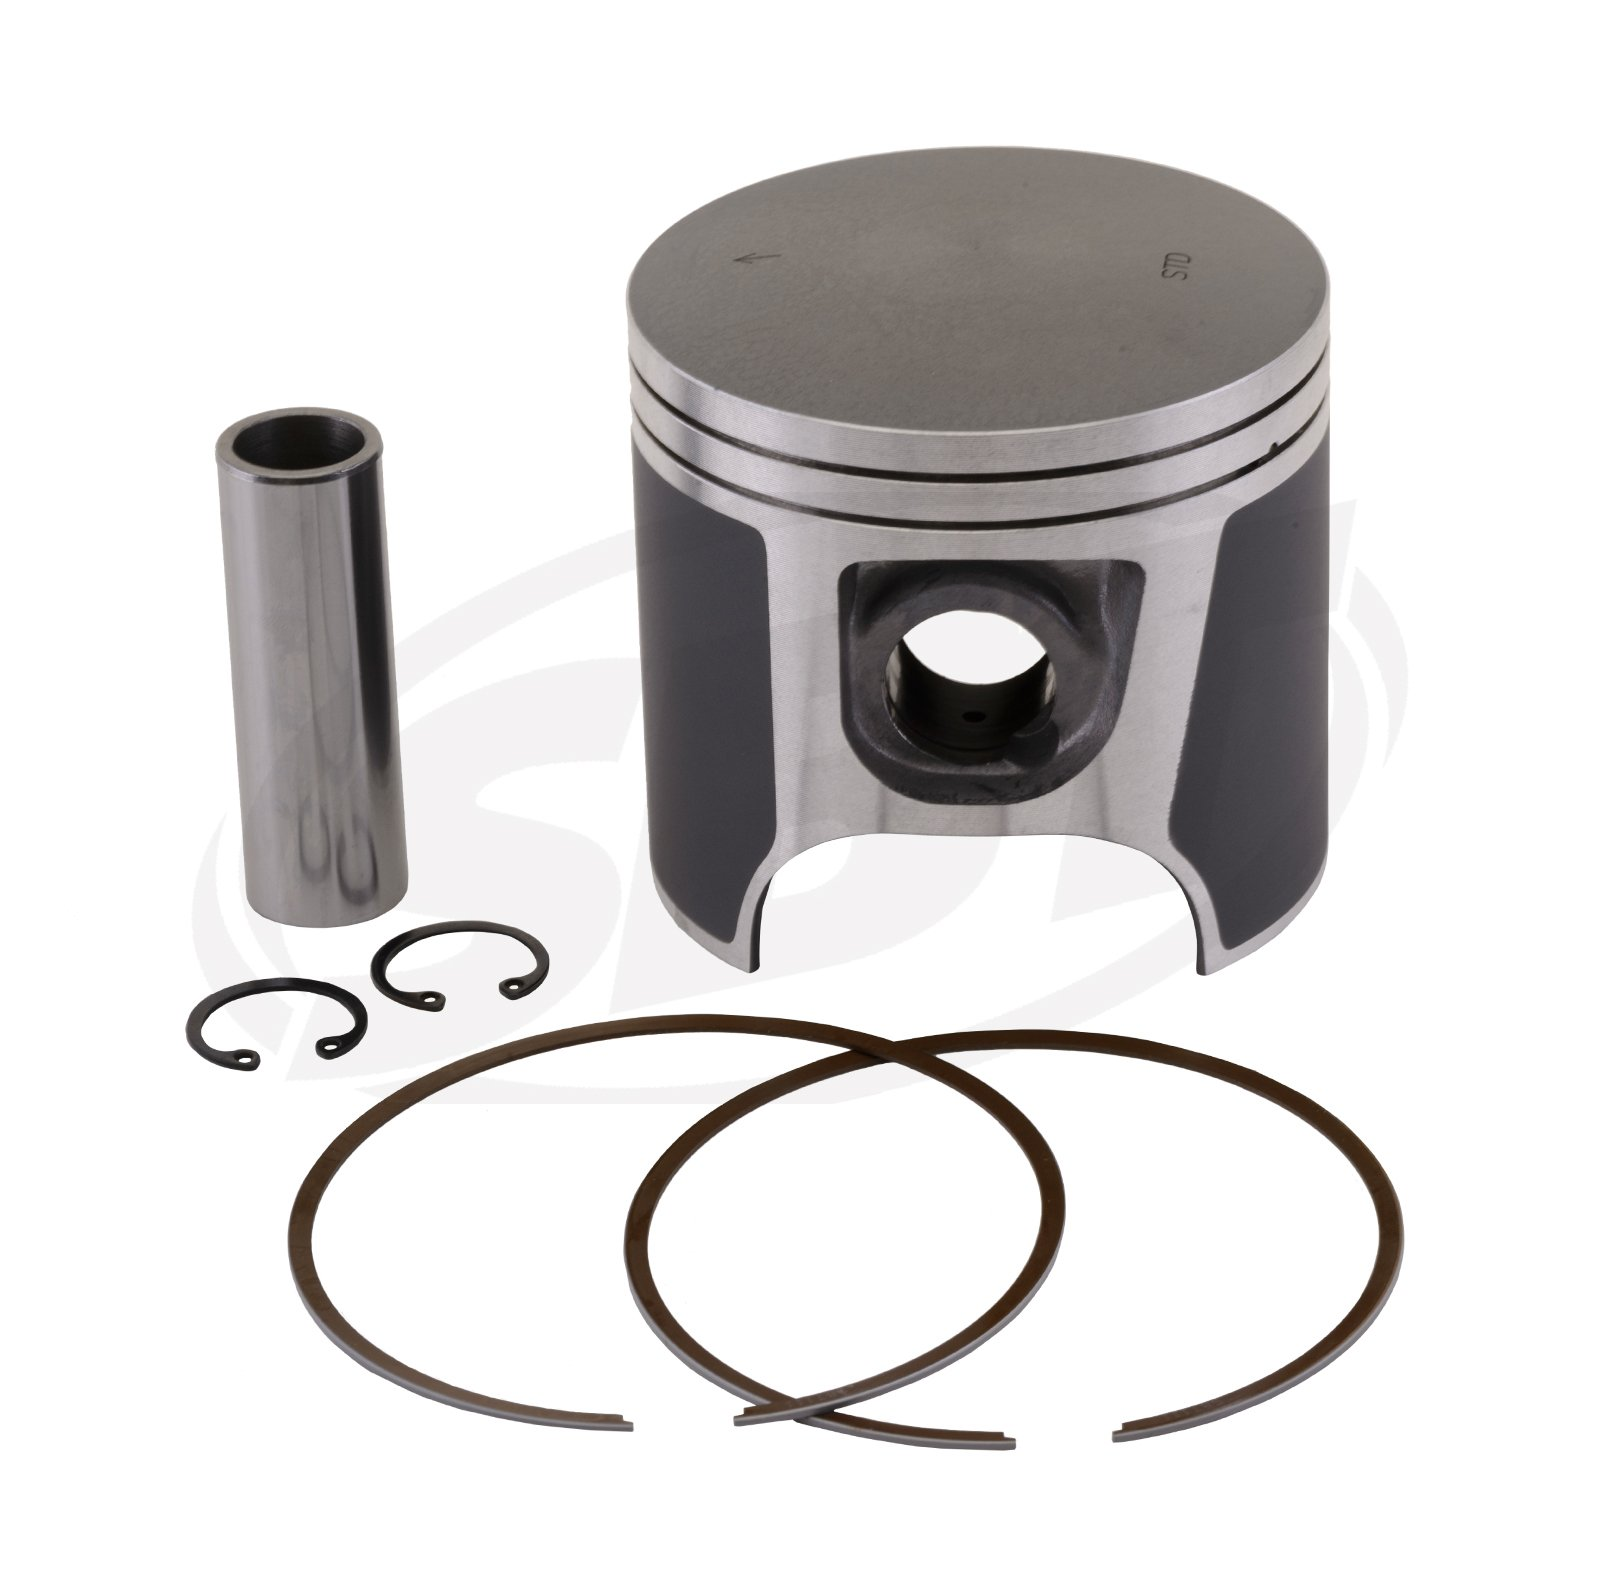 Sea-Doo 947DI/951DI Piston & Ring Set GTX DI/RX DI/LRV DI/3D DI/XP DI/Sport LE DI 2000 2001 2002 2003 2004 2005 2006 by SBT